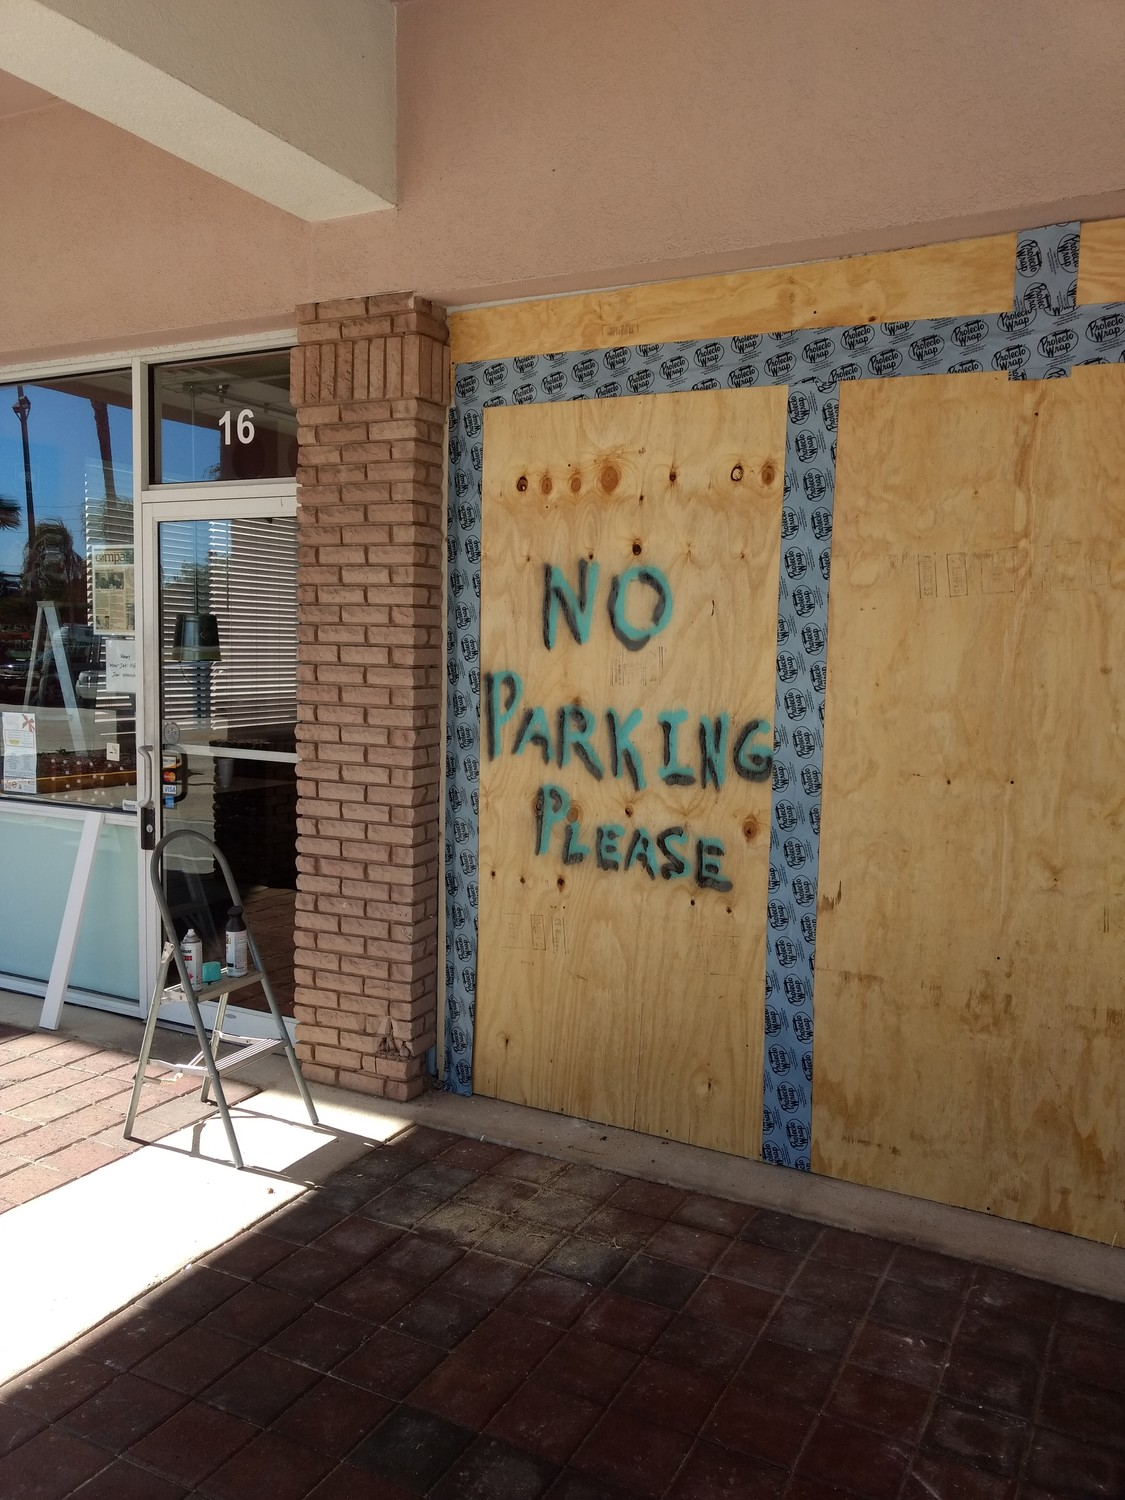 Local businesses recover after car crashes into their stores | The ...